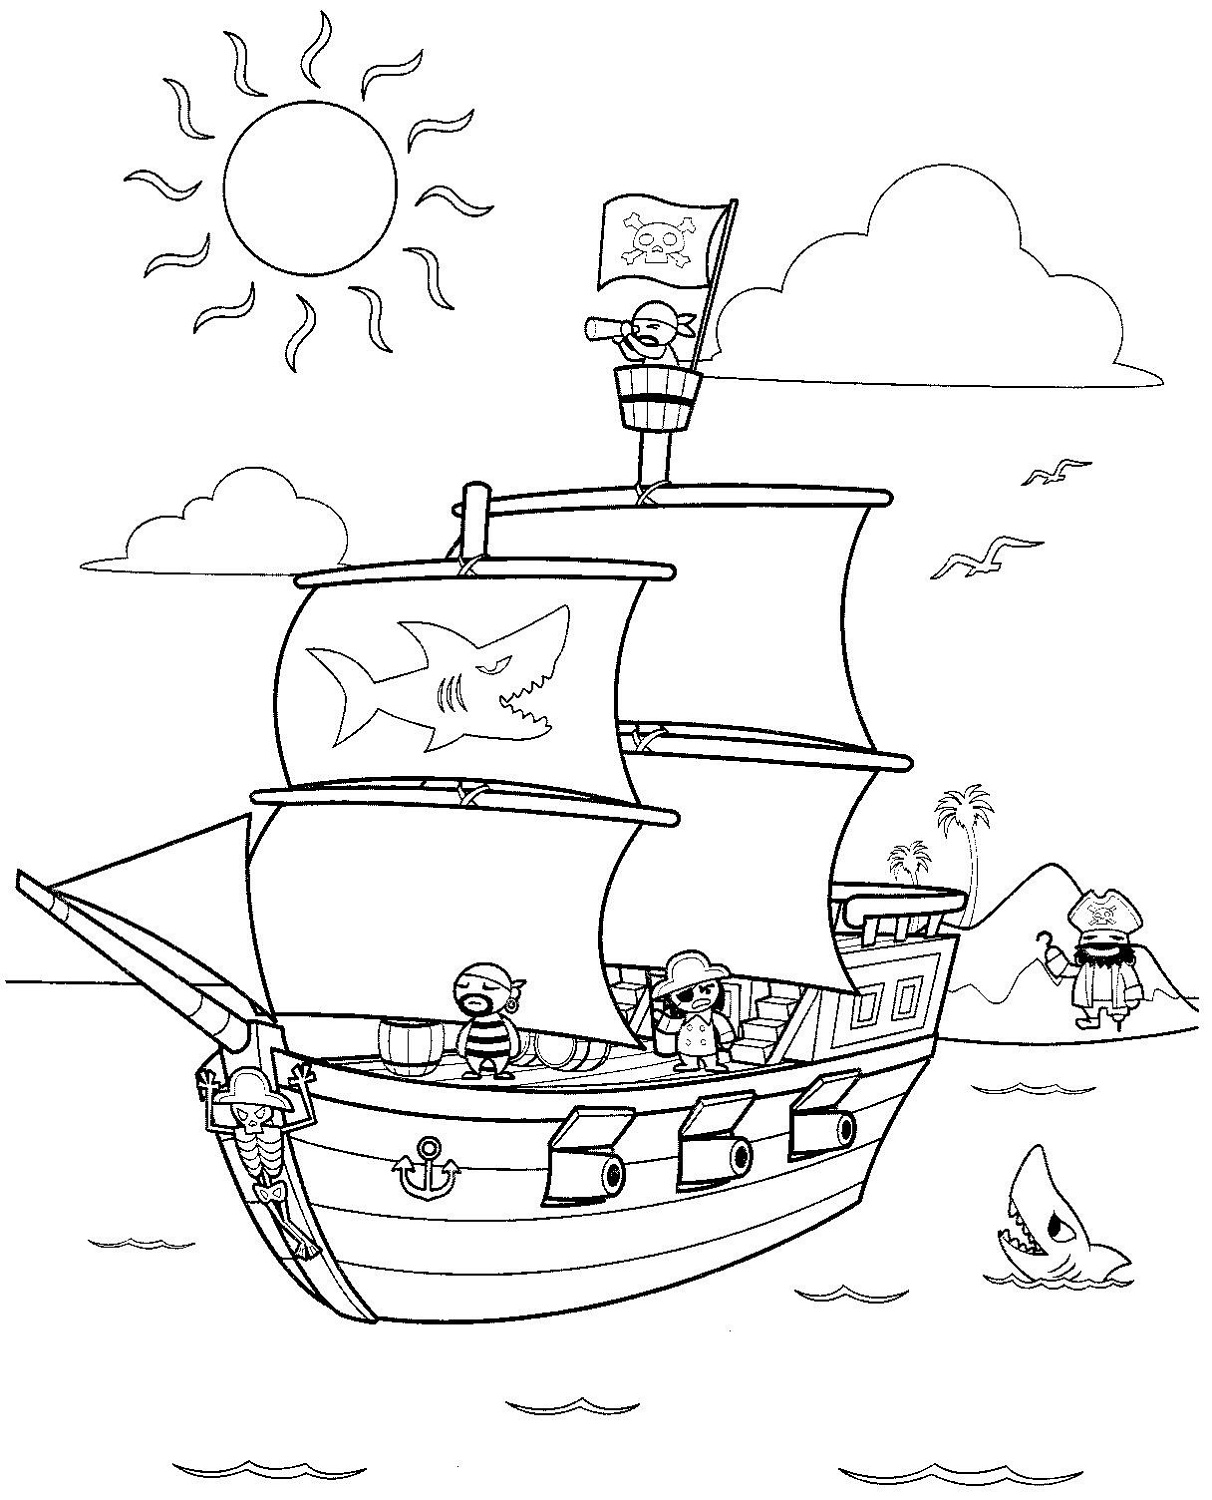 pirate ship to color pirate ship pictures for kids activity shelter to pirate color ship